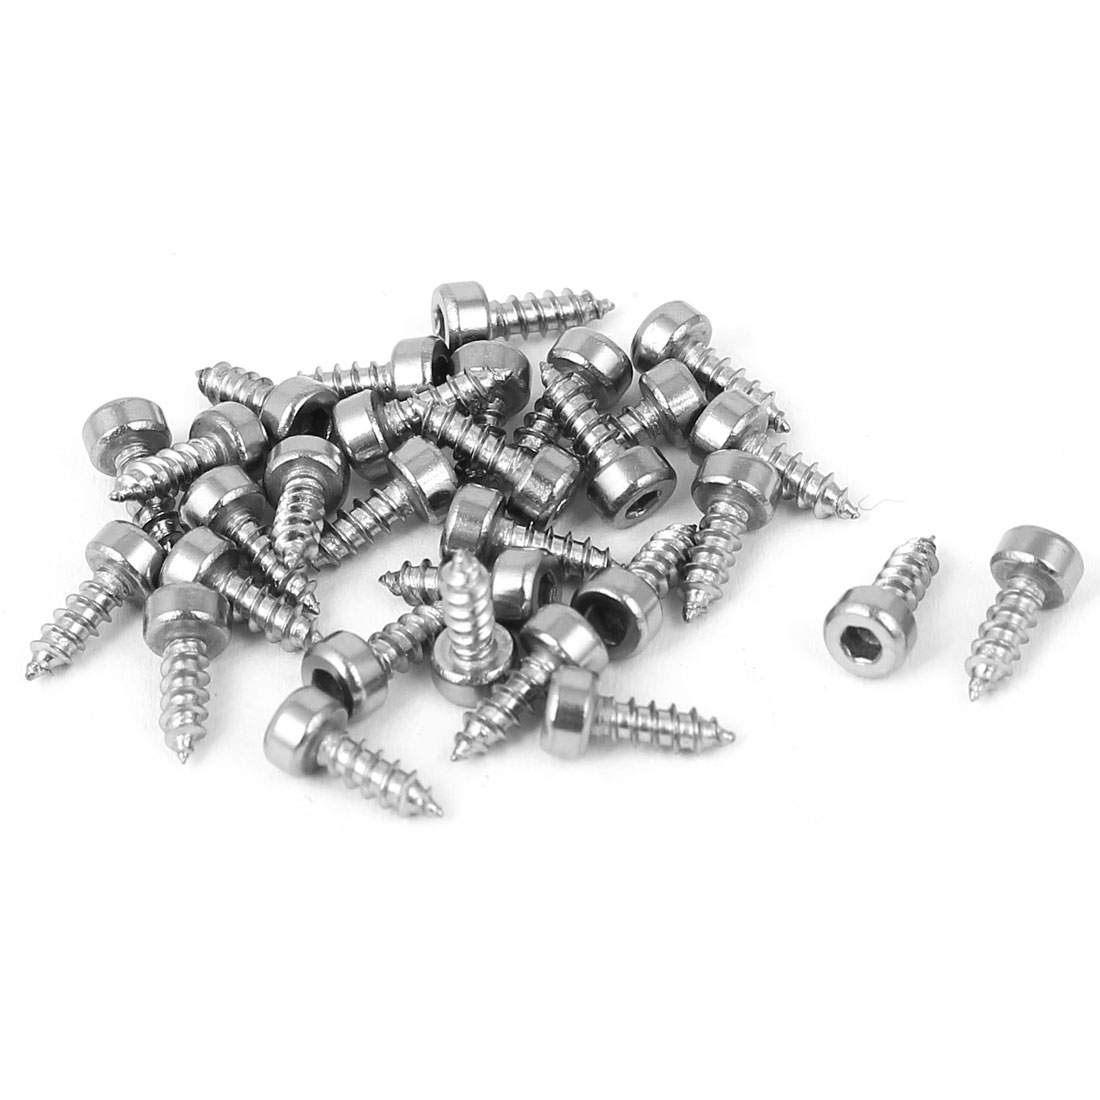 30pcs M2x6mm Stainless Steel Hex Socket Cap Head Self Tapping Screws